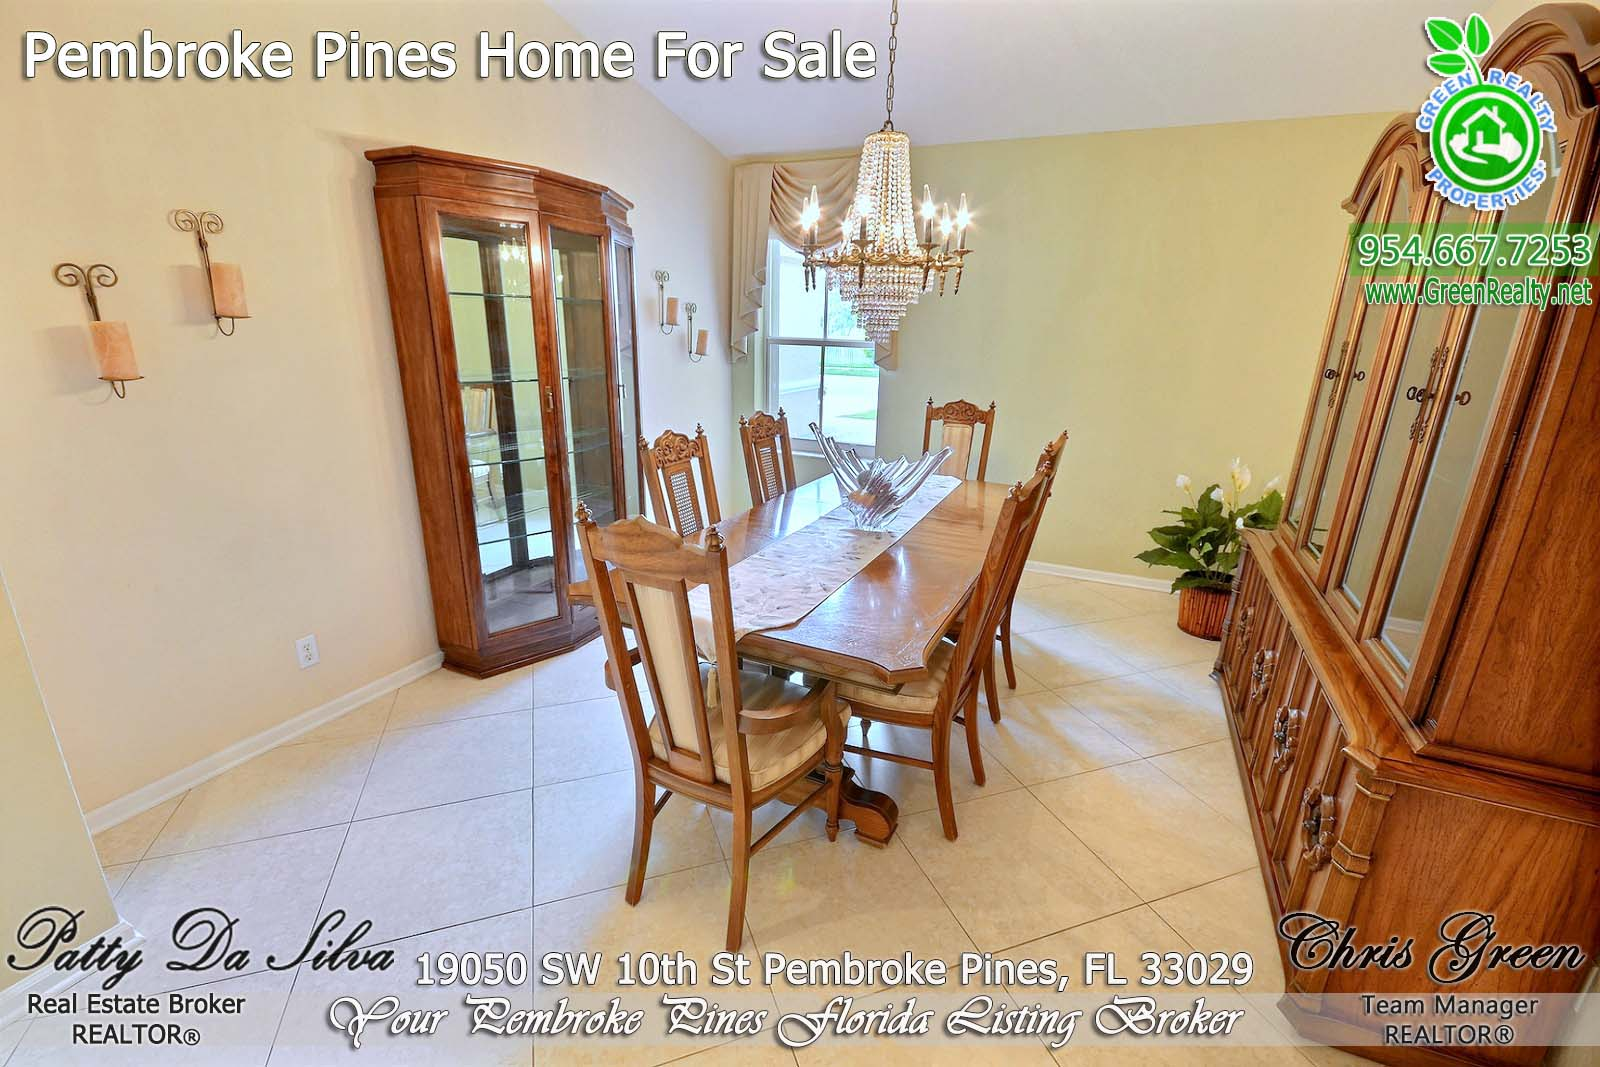 8 Homes For Sale in Pembroke Pines (4)